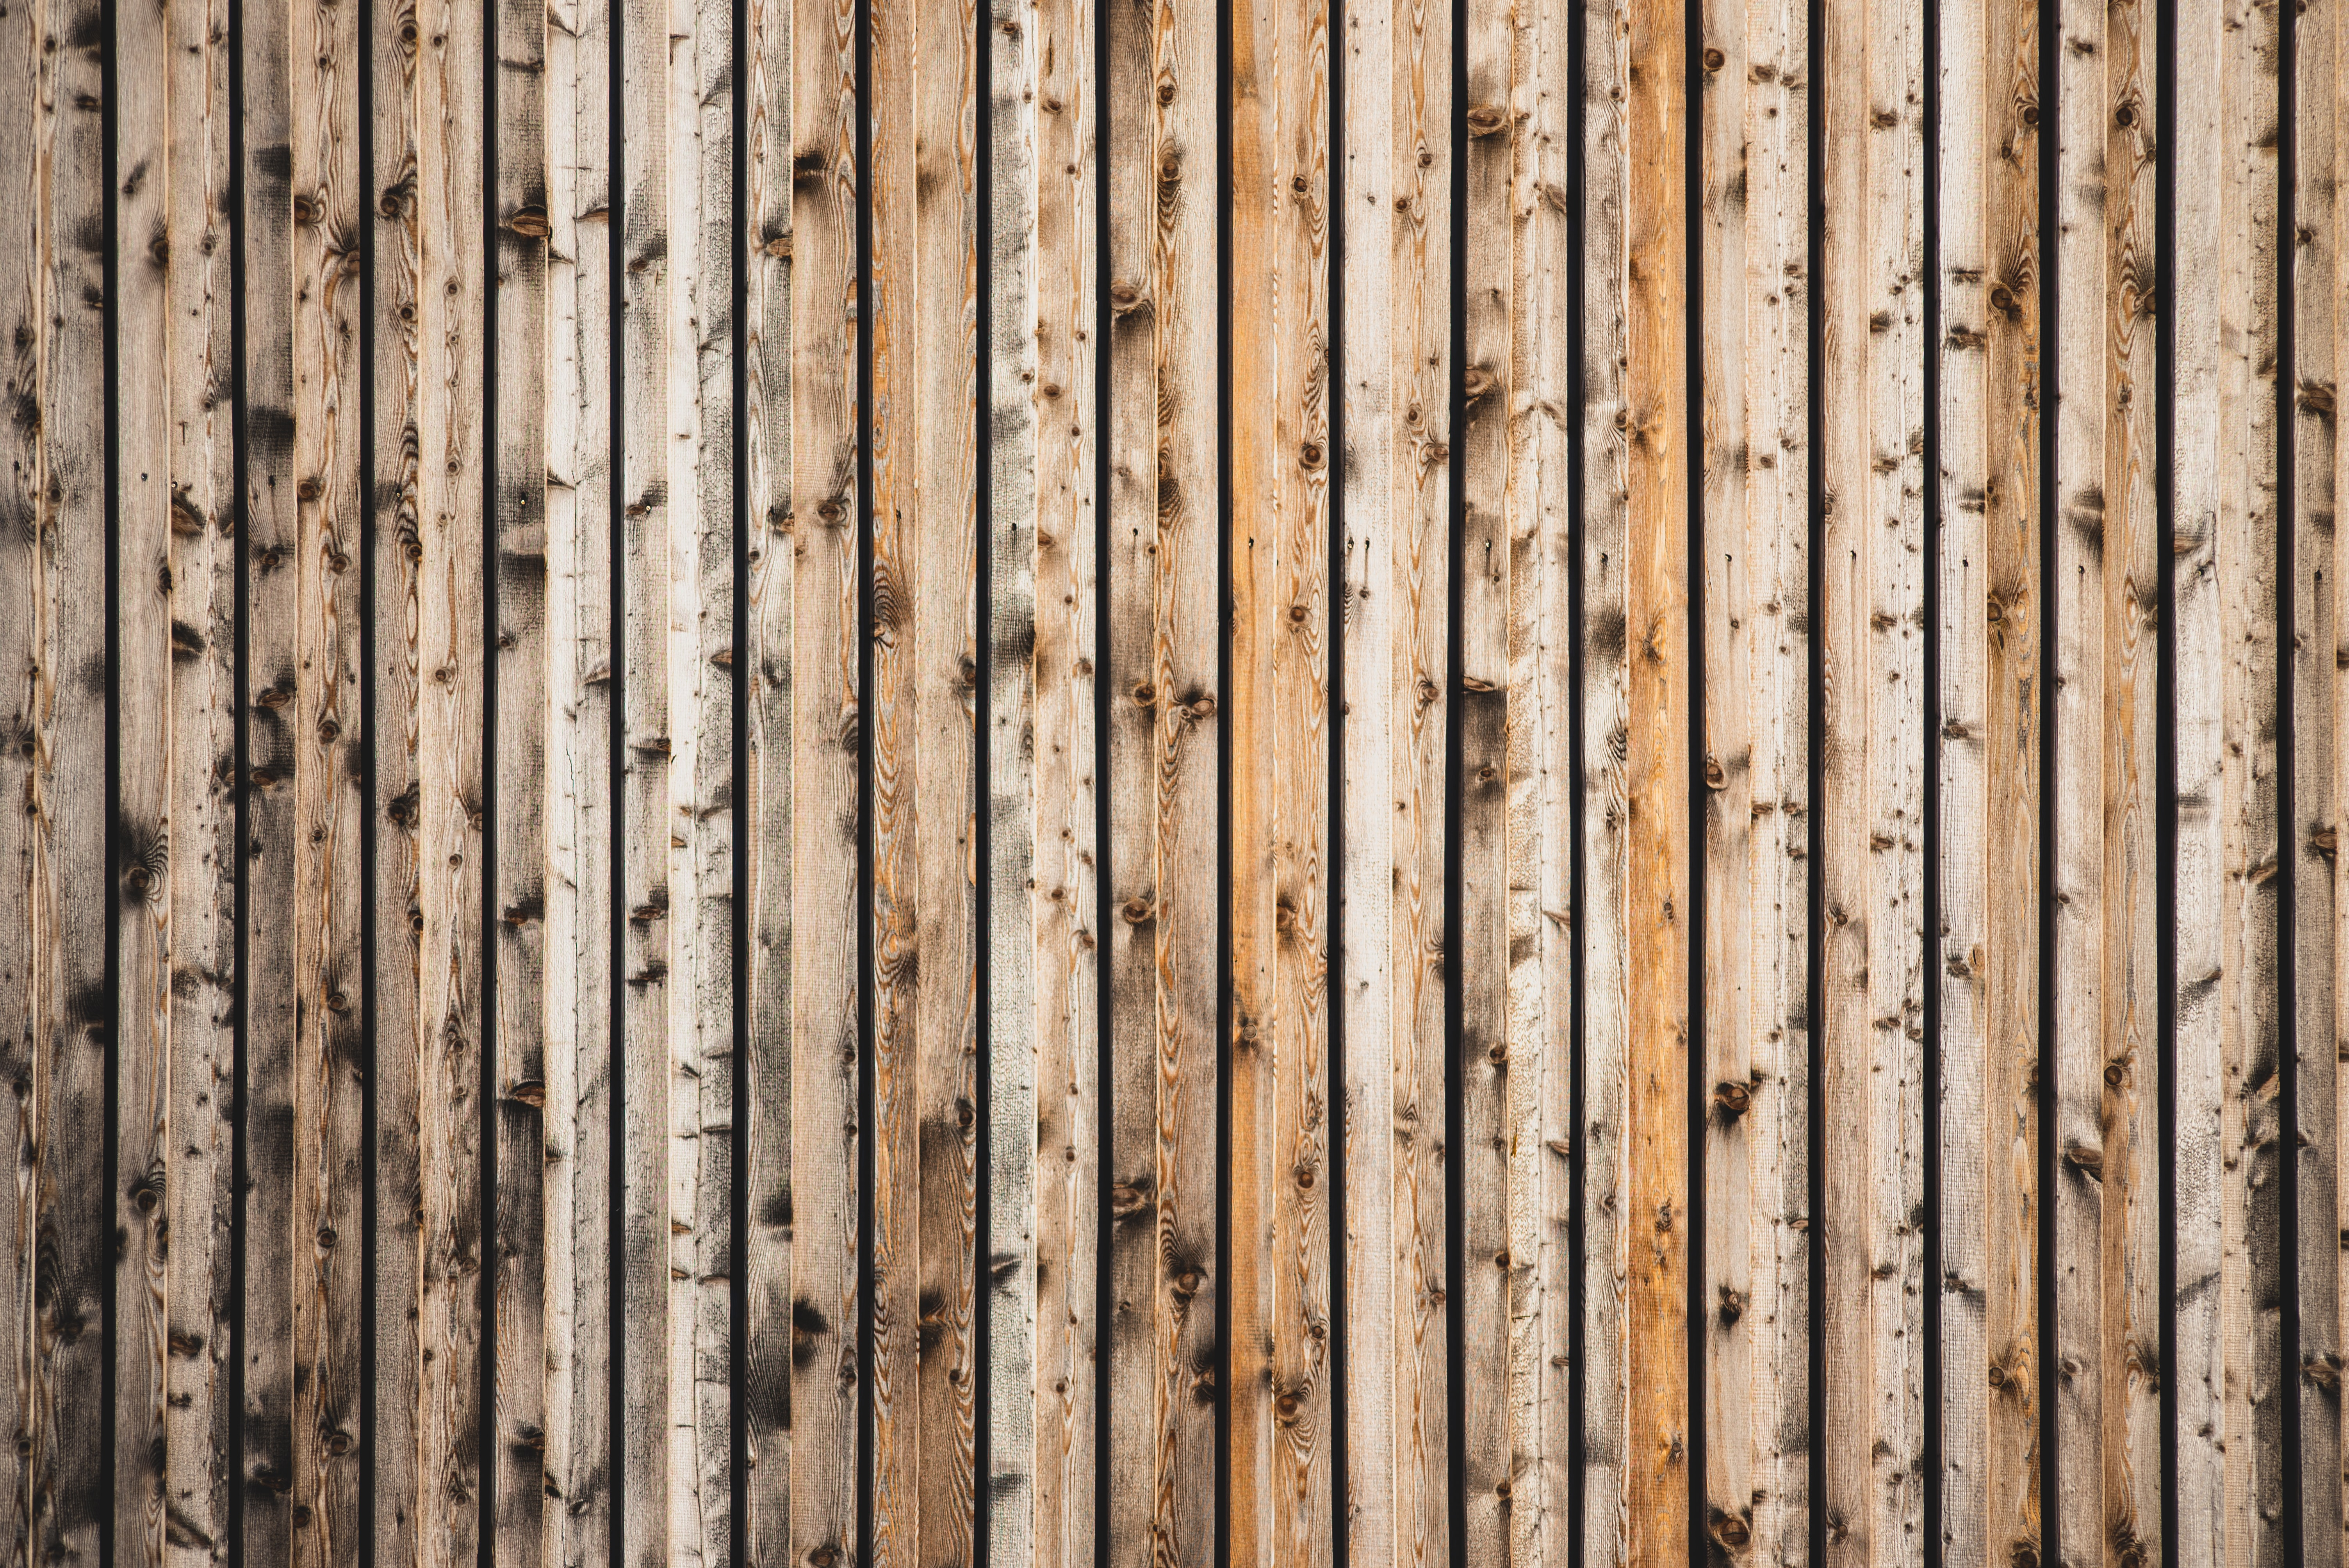 117043 download wallpaper Textures, Texture, Wood, Tree, Planks, Board, Brown screensavers and pictures for free